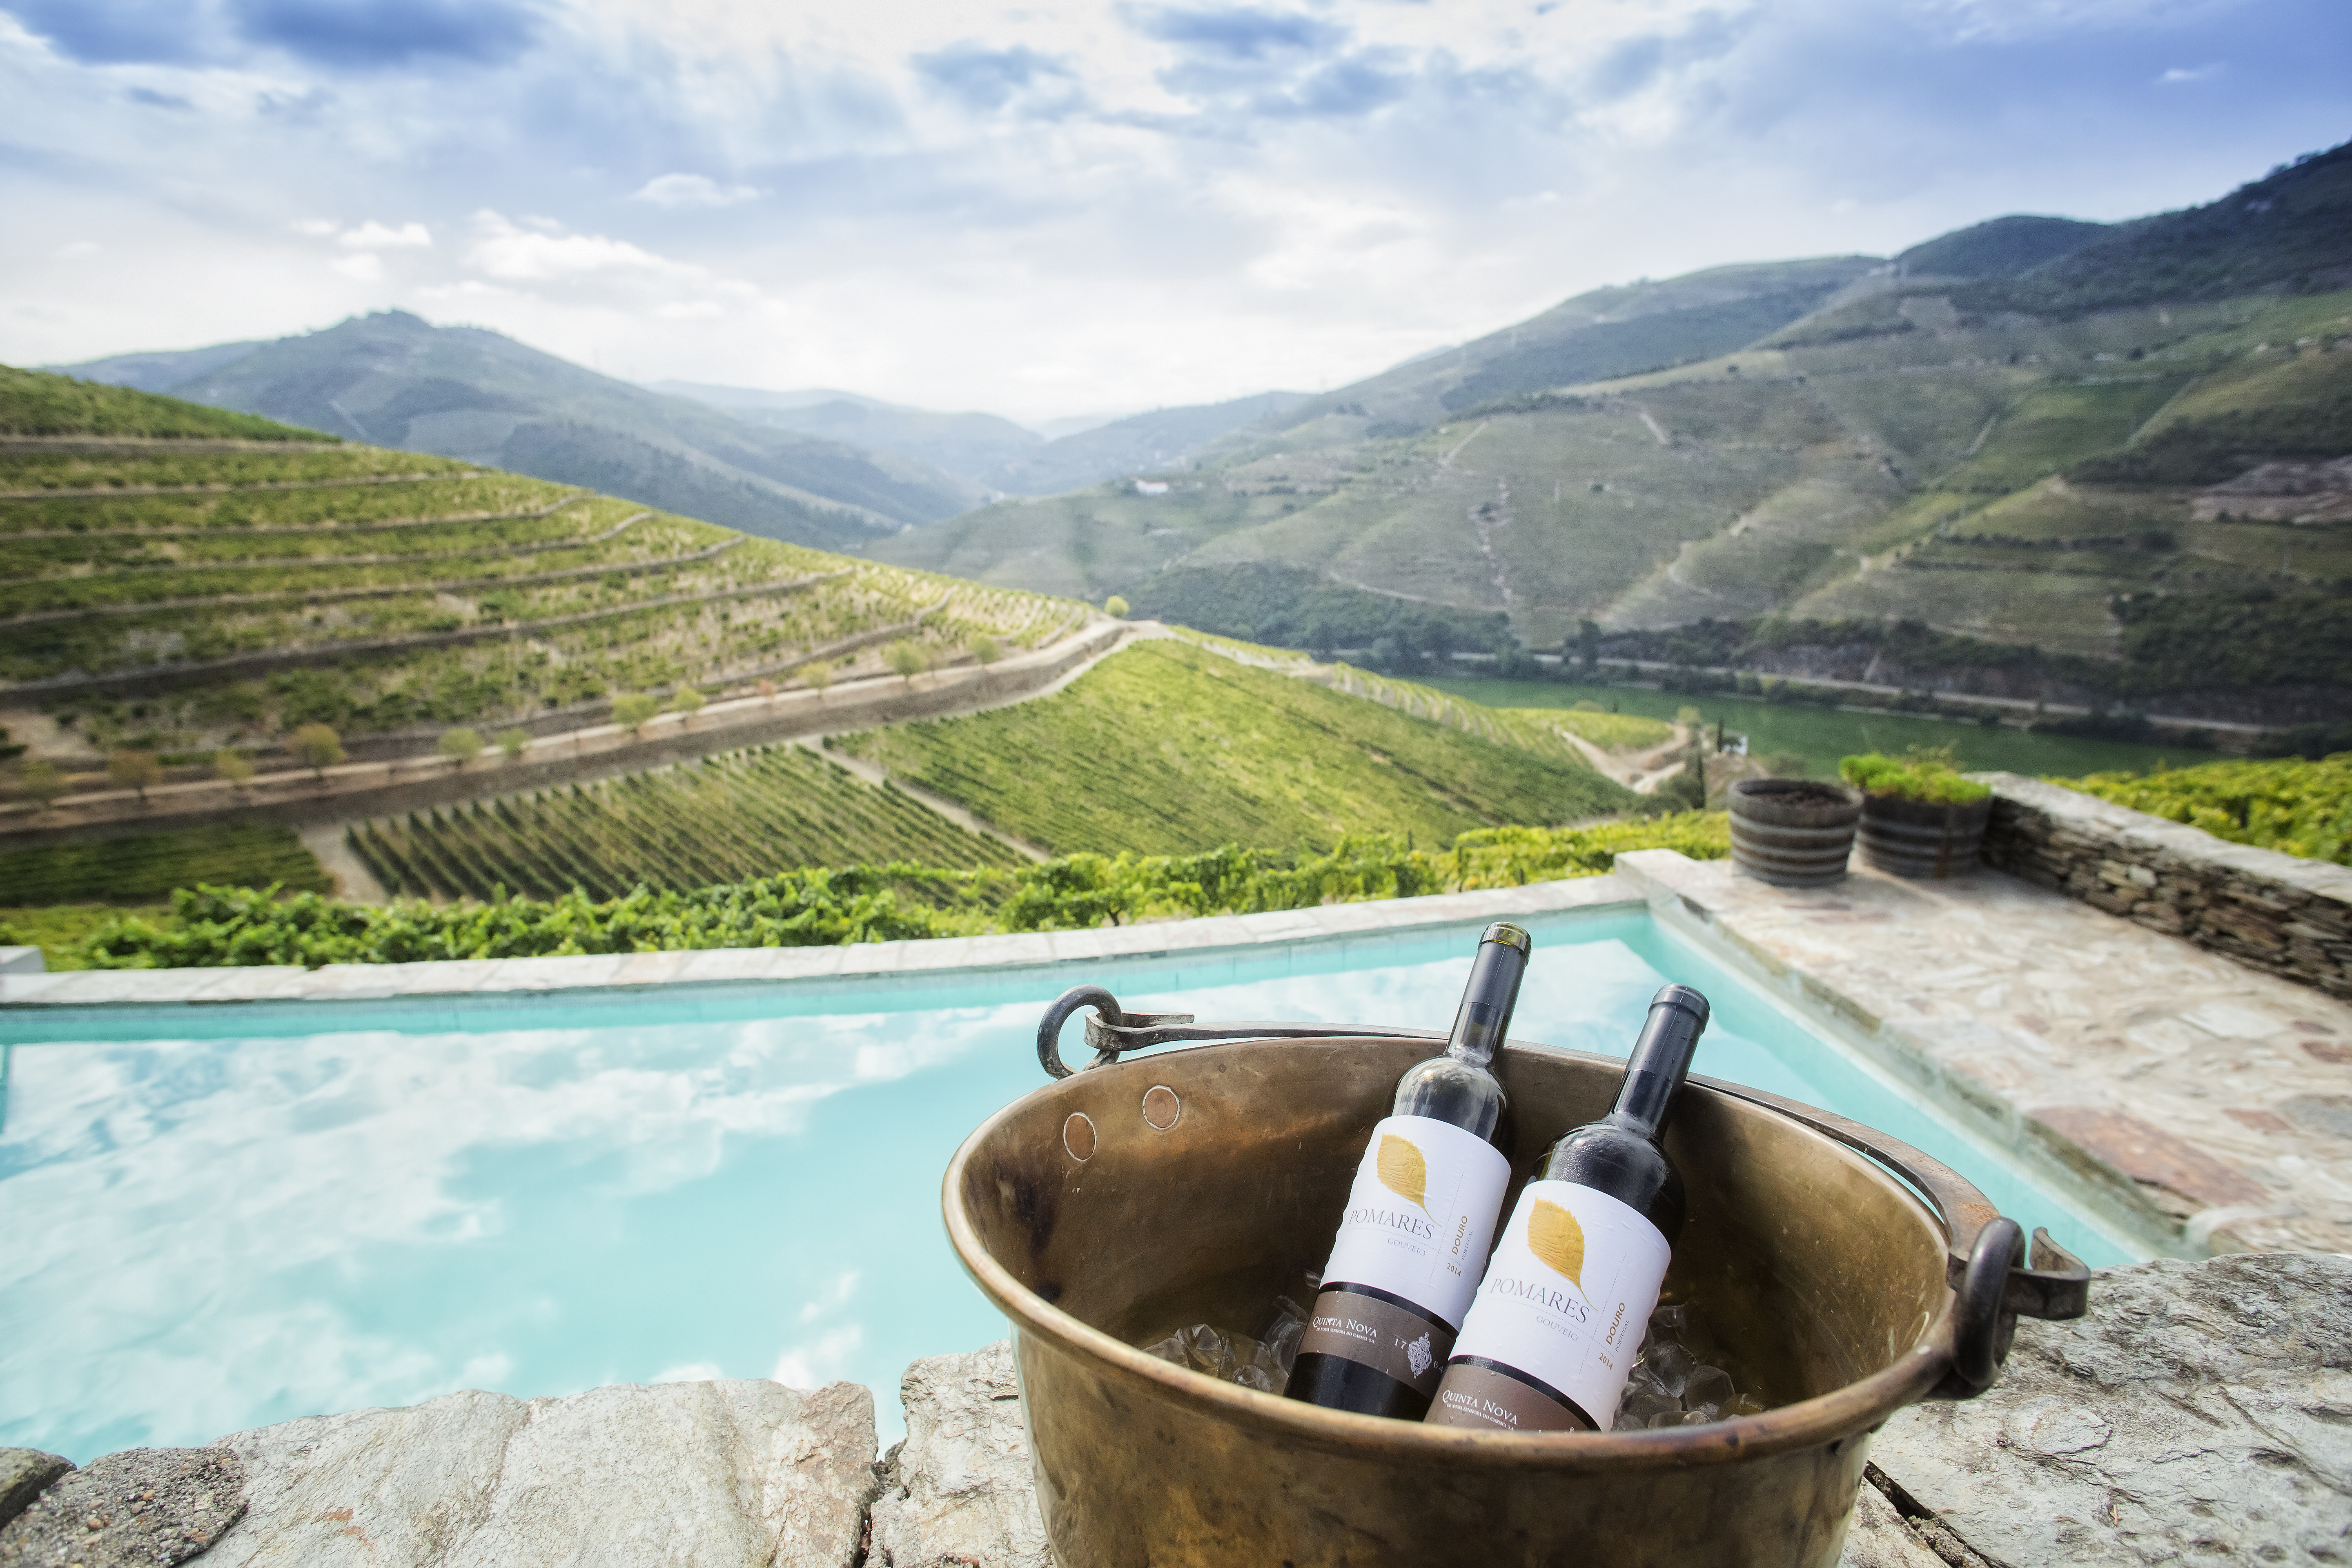 CONTEST:Win a Luxurious stay for 2 in Douro Valley with Dinner and Wine Pairing Experience